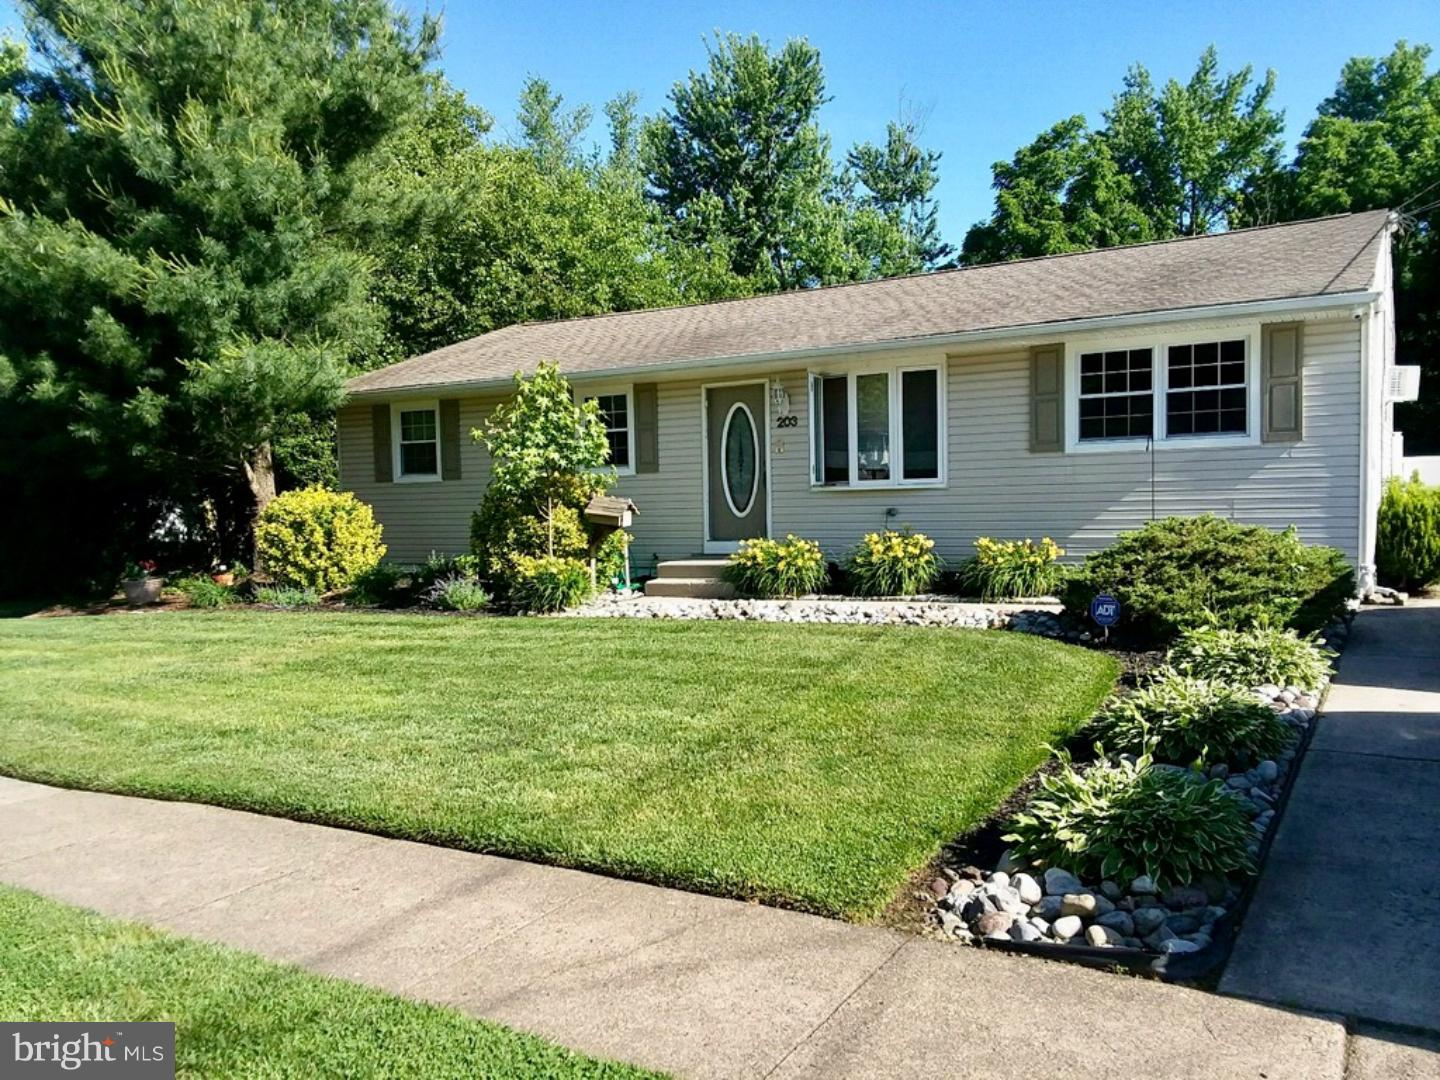 Single Family Home for Sale at 203 CENTRAL Avenue Woodbury Heights, New Jersey 08097 United States